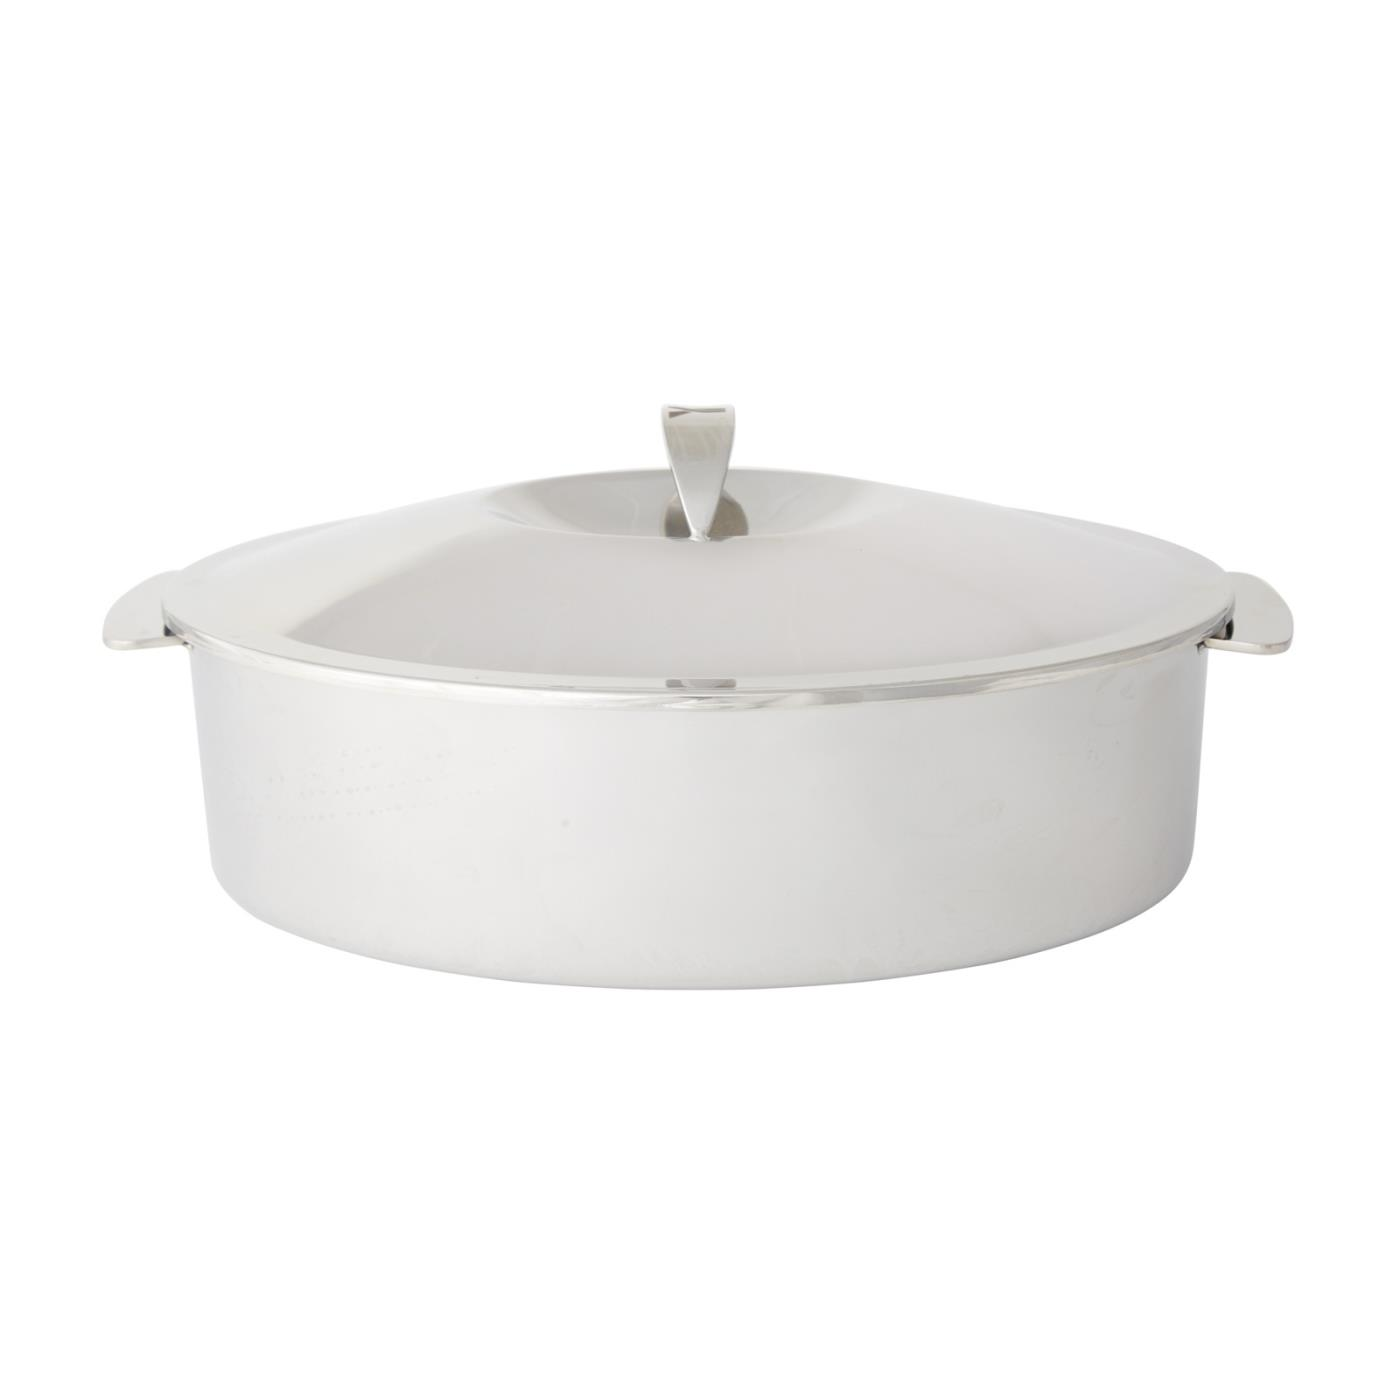 "Steel Oval Dutch Oven - 13.5"" x 9"""